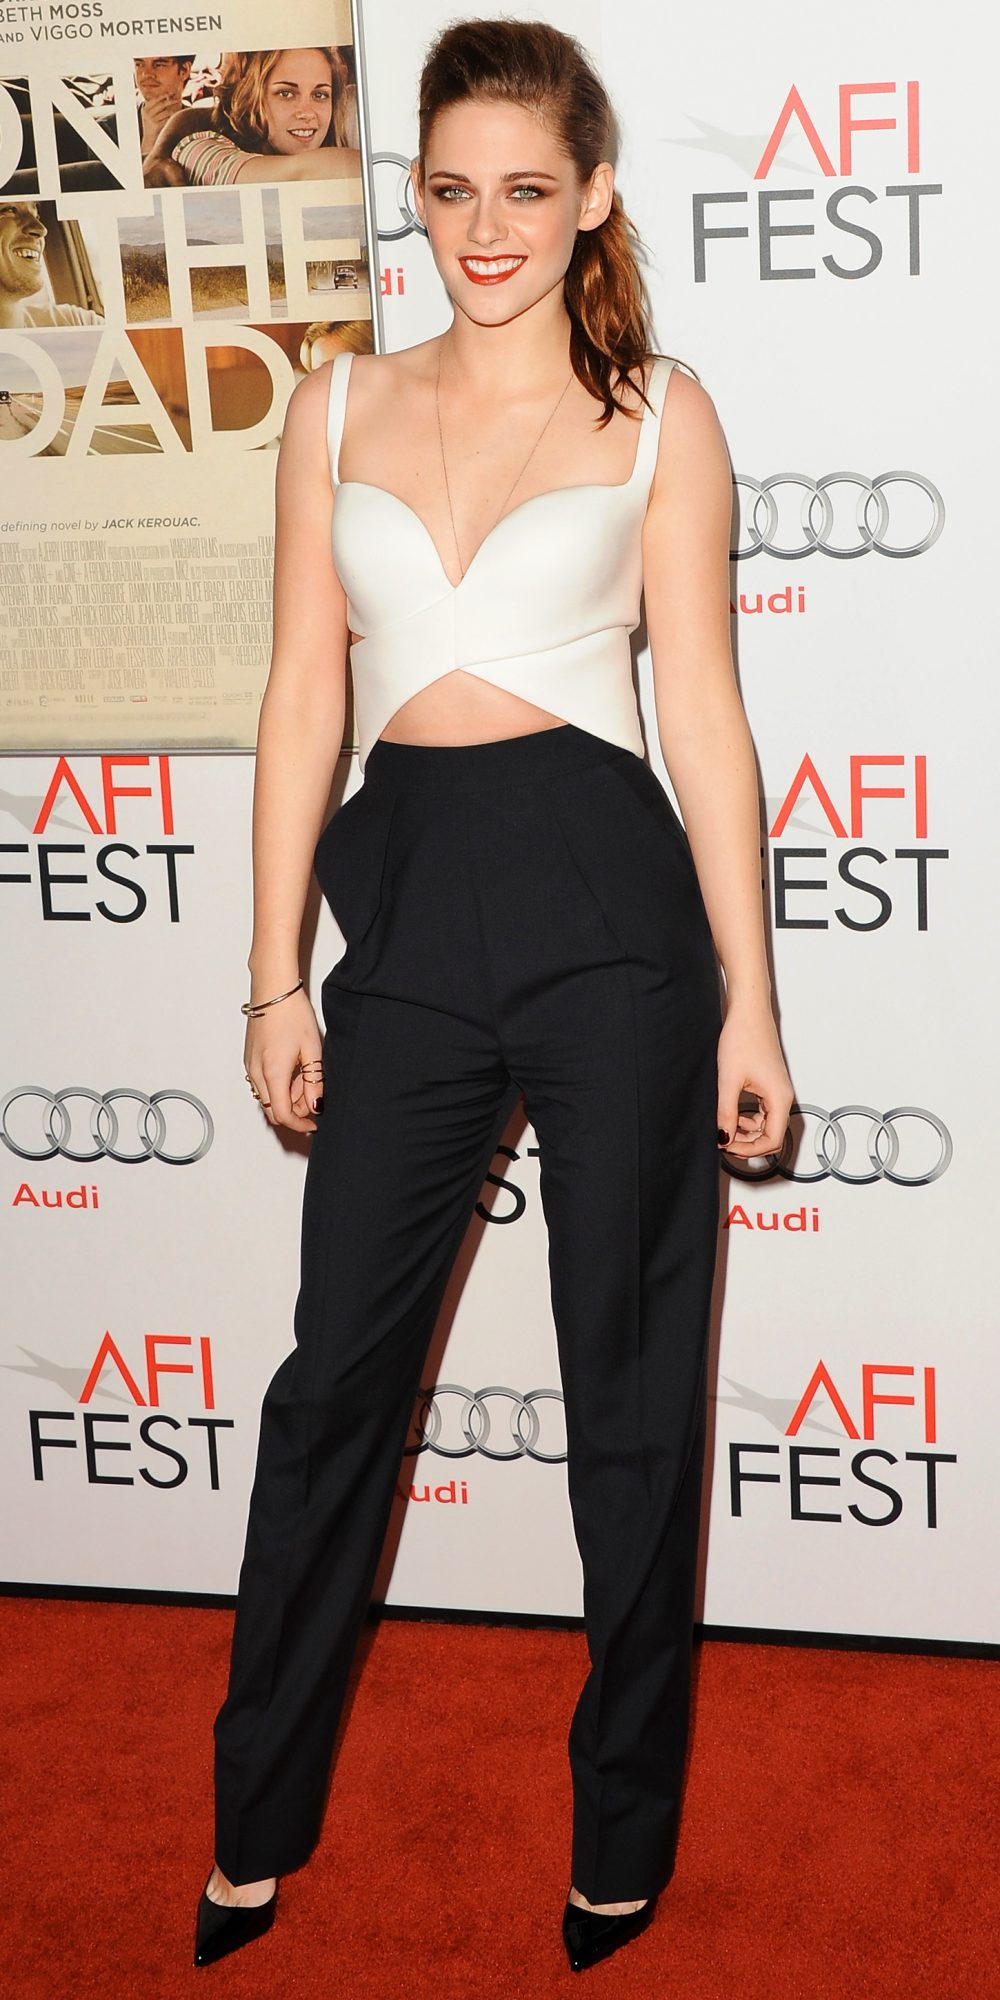 In Balenciaga at the American Film Institute Fest in L.A., 2012